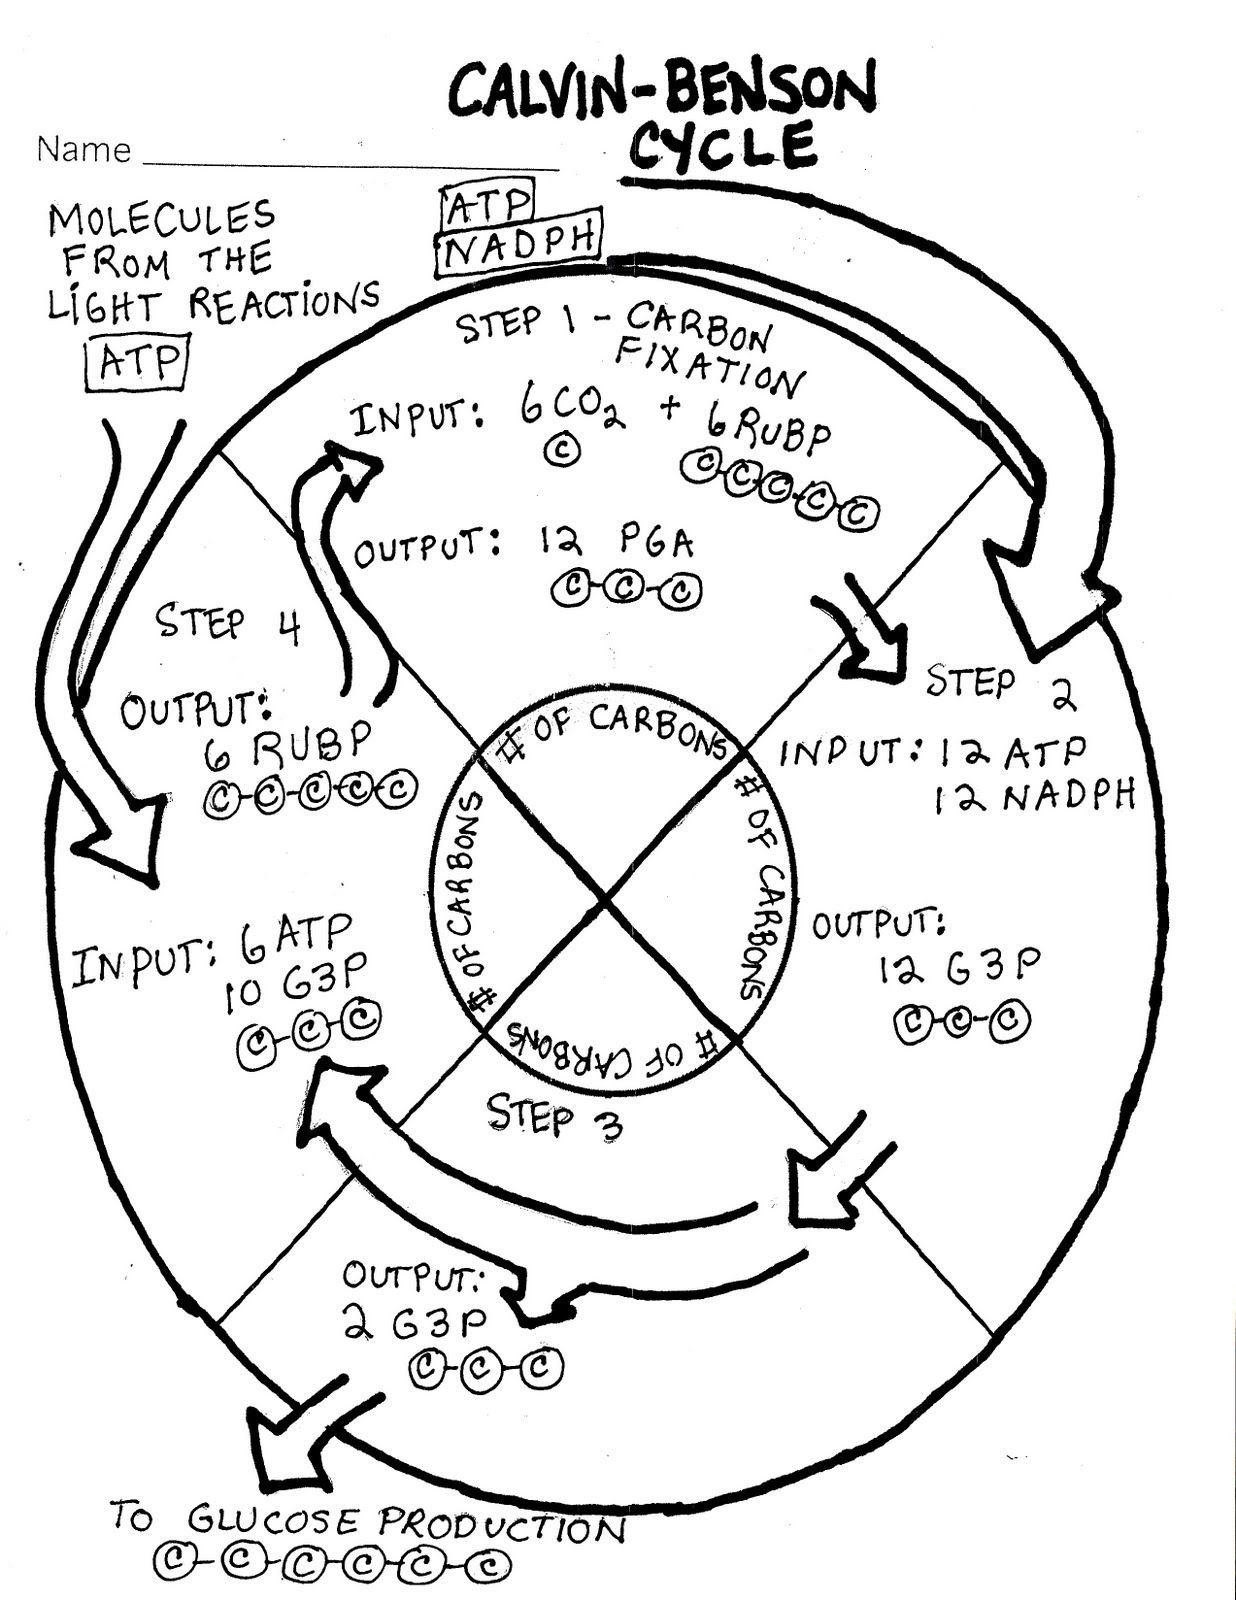 Carbon Cycle Diagram Worksheet Synthesis The Calvin Cycle